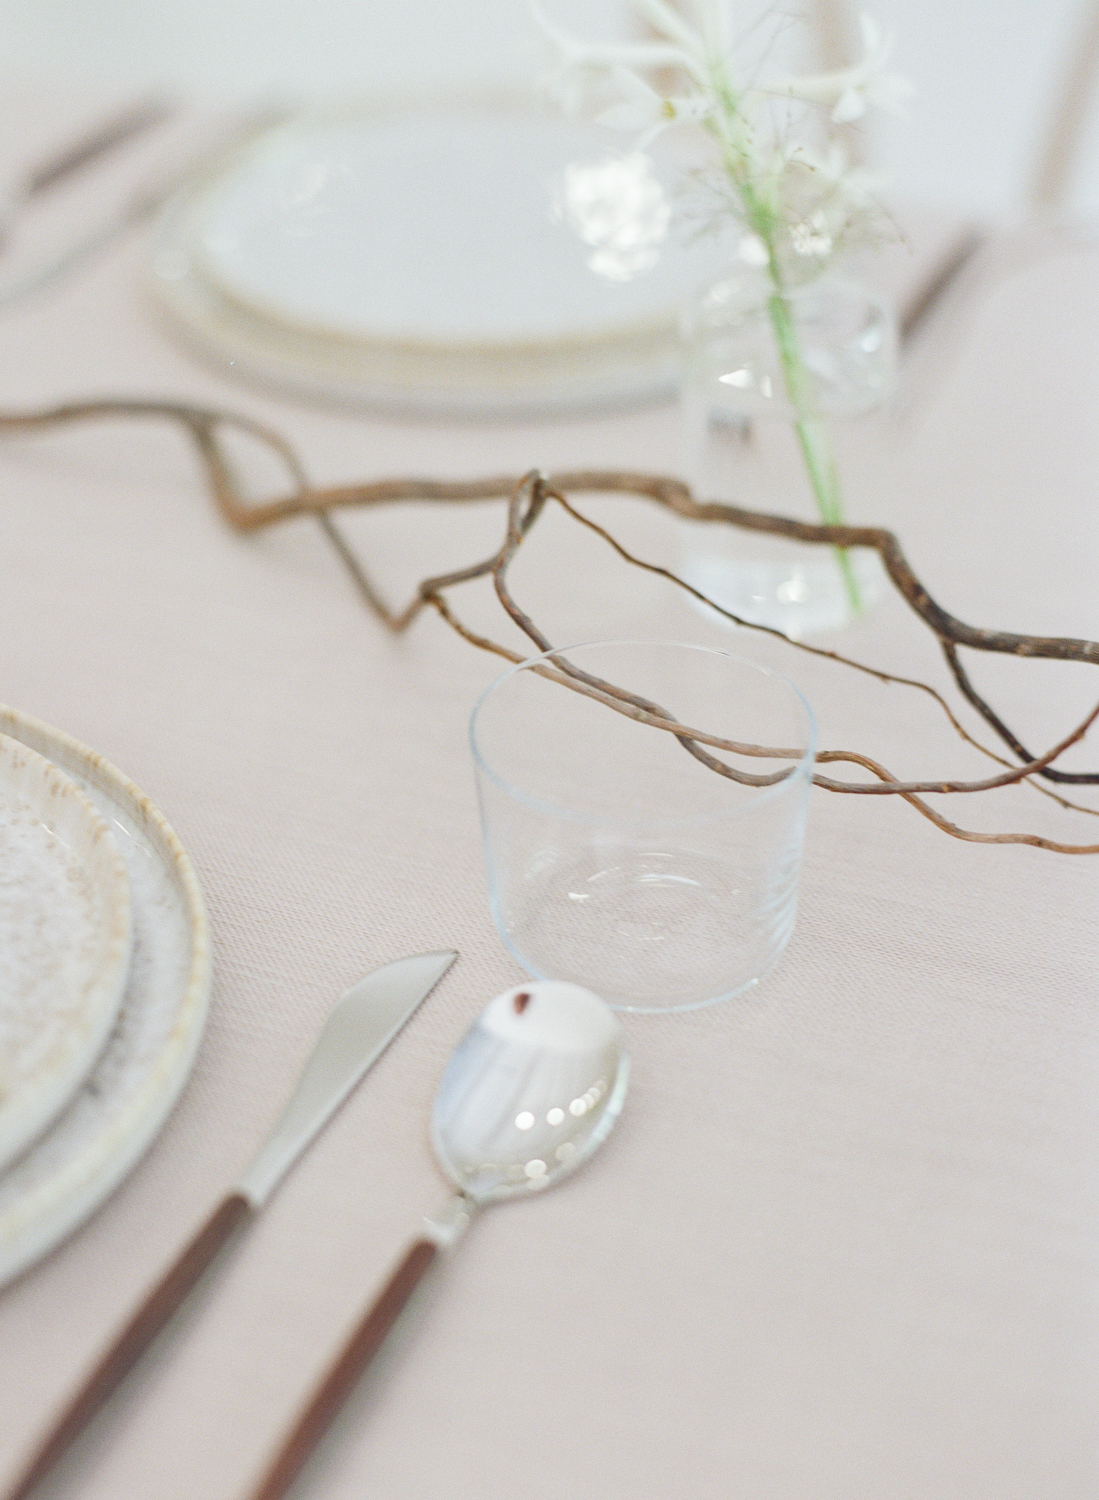 Glass and flatware with decorative branch